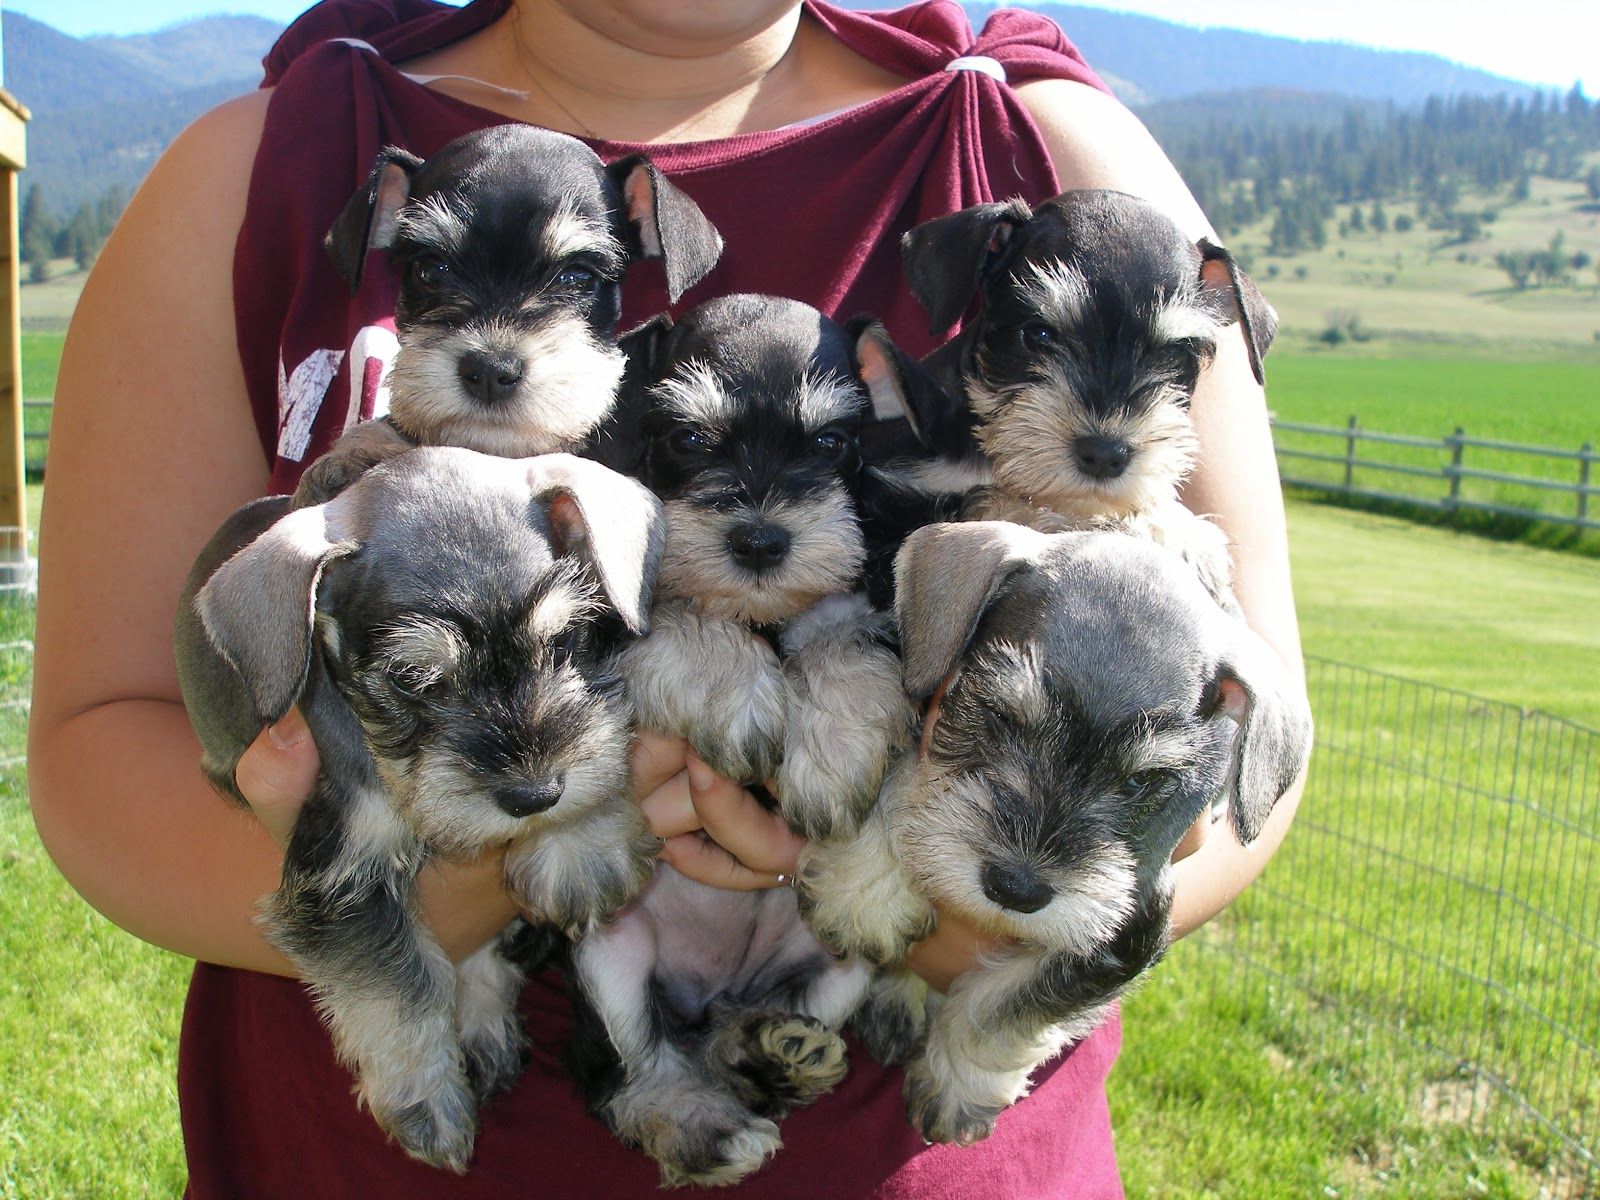 Miniature Schnauzer Dogs and Puppies for sale in the UK